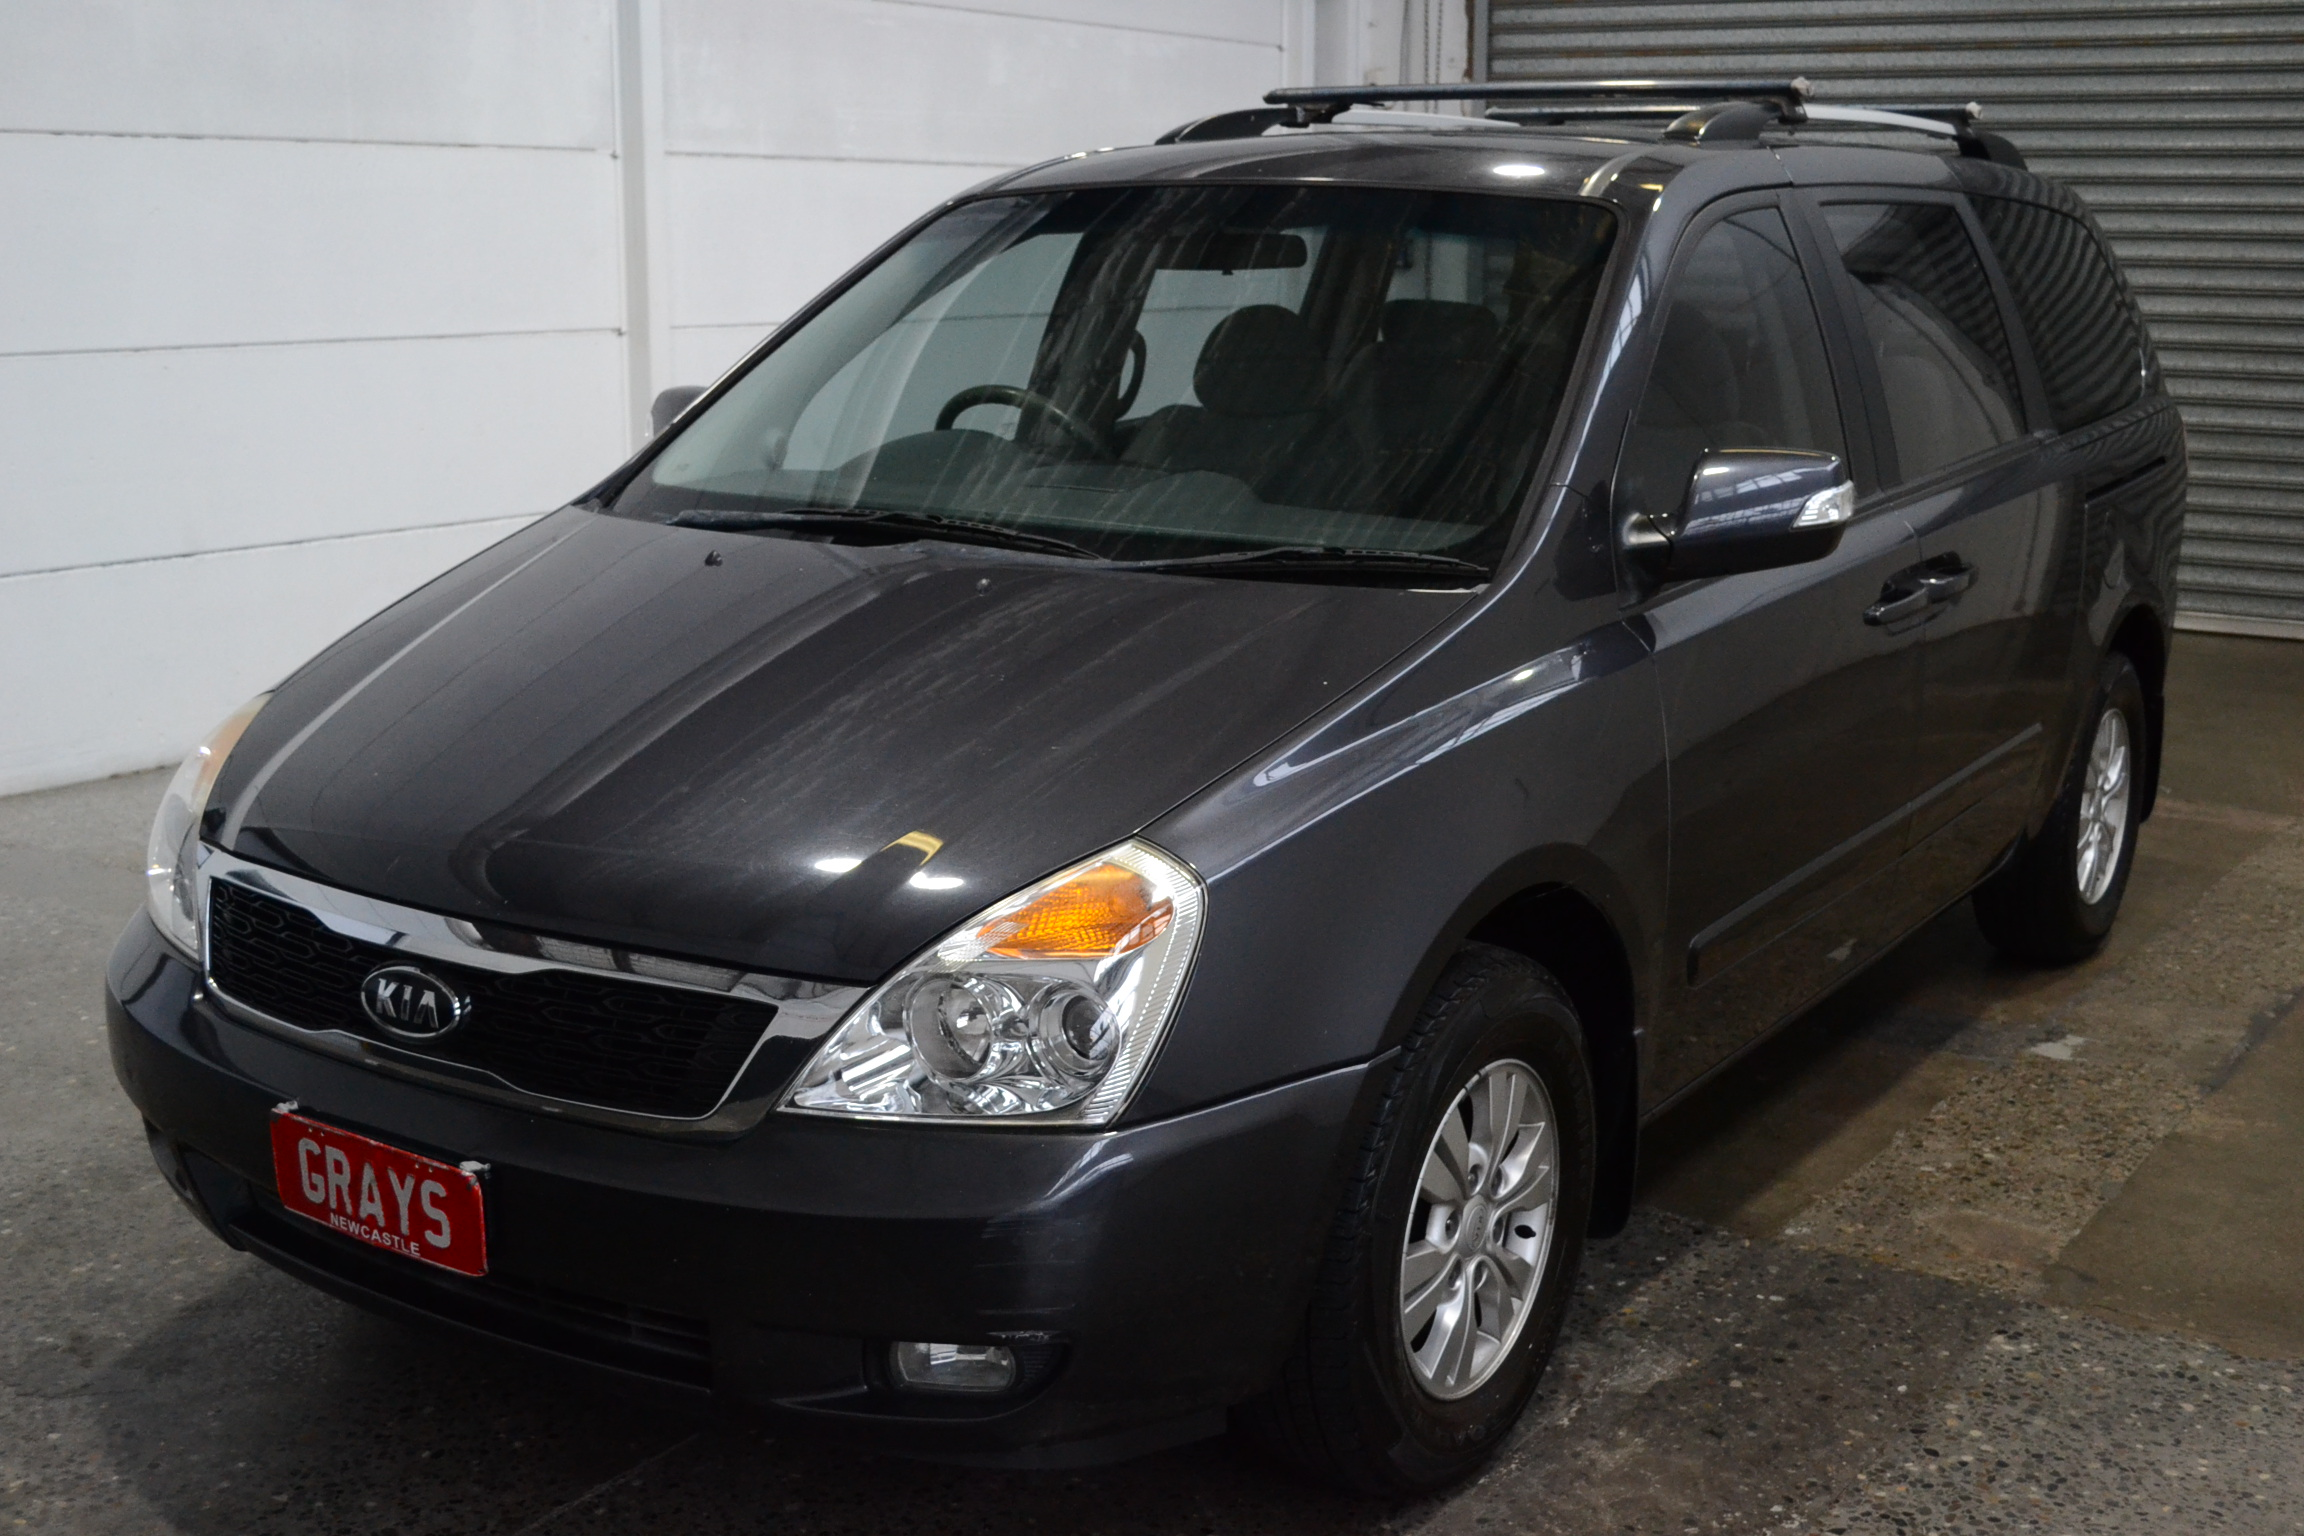 2011 Kia Grand Carnival Si VQ Automatic 8 Seats People Mover